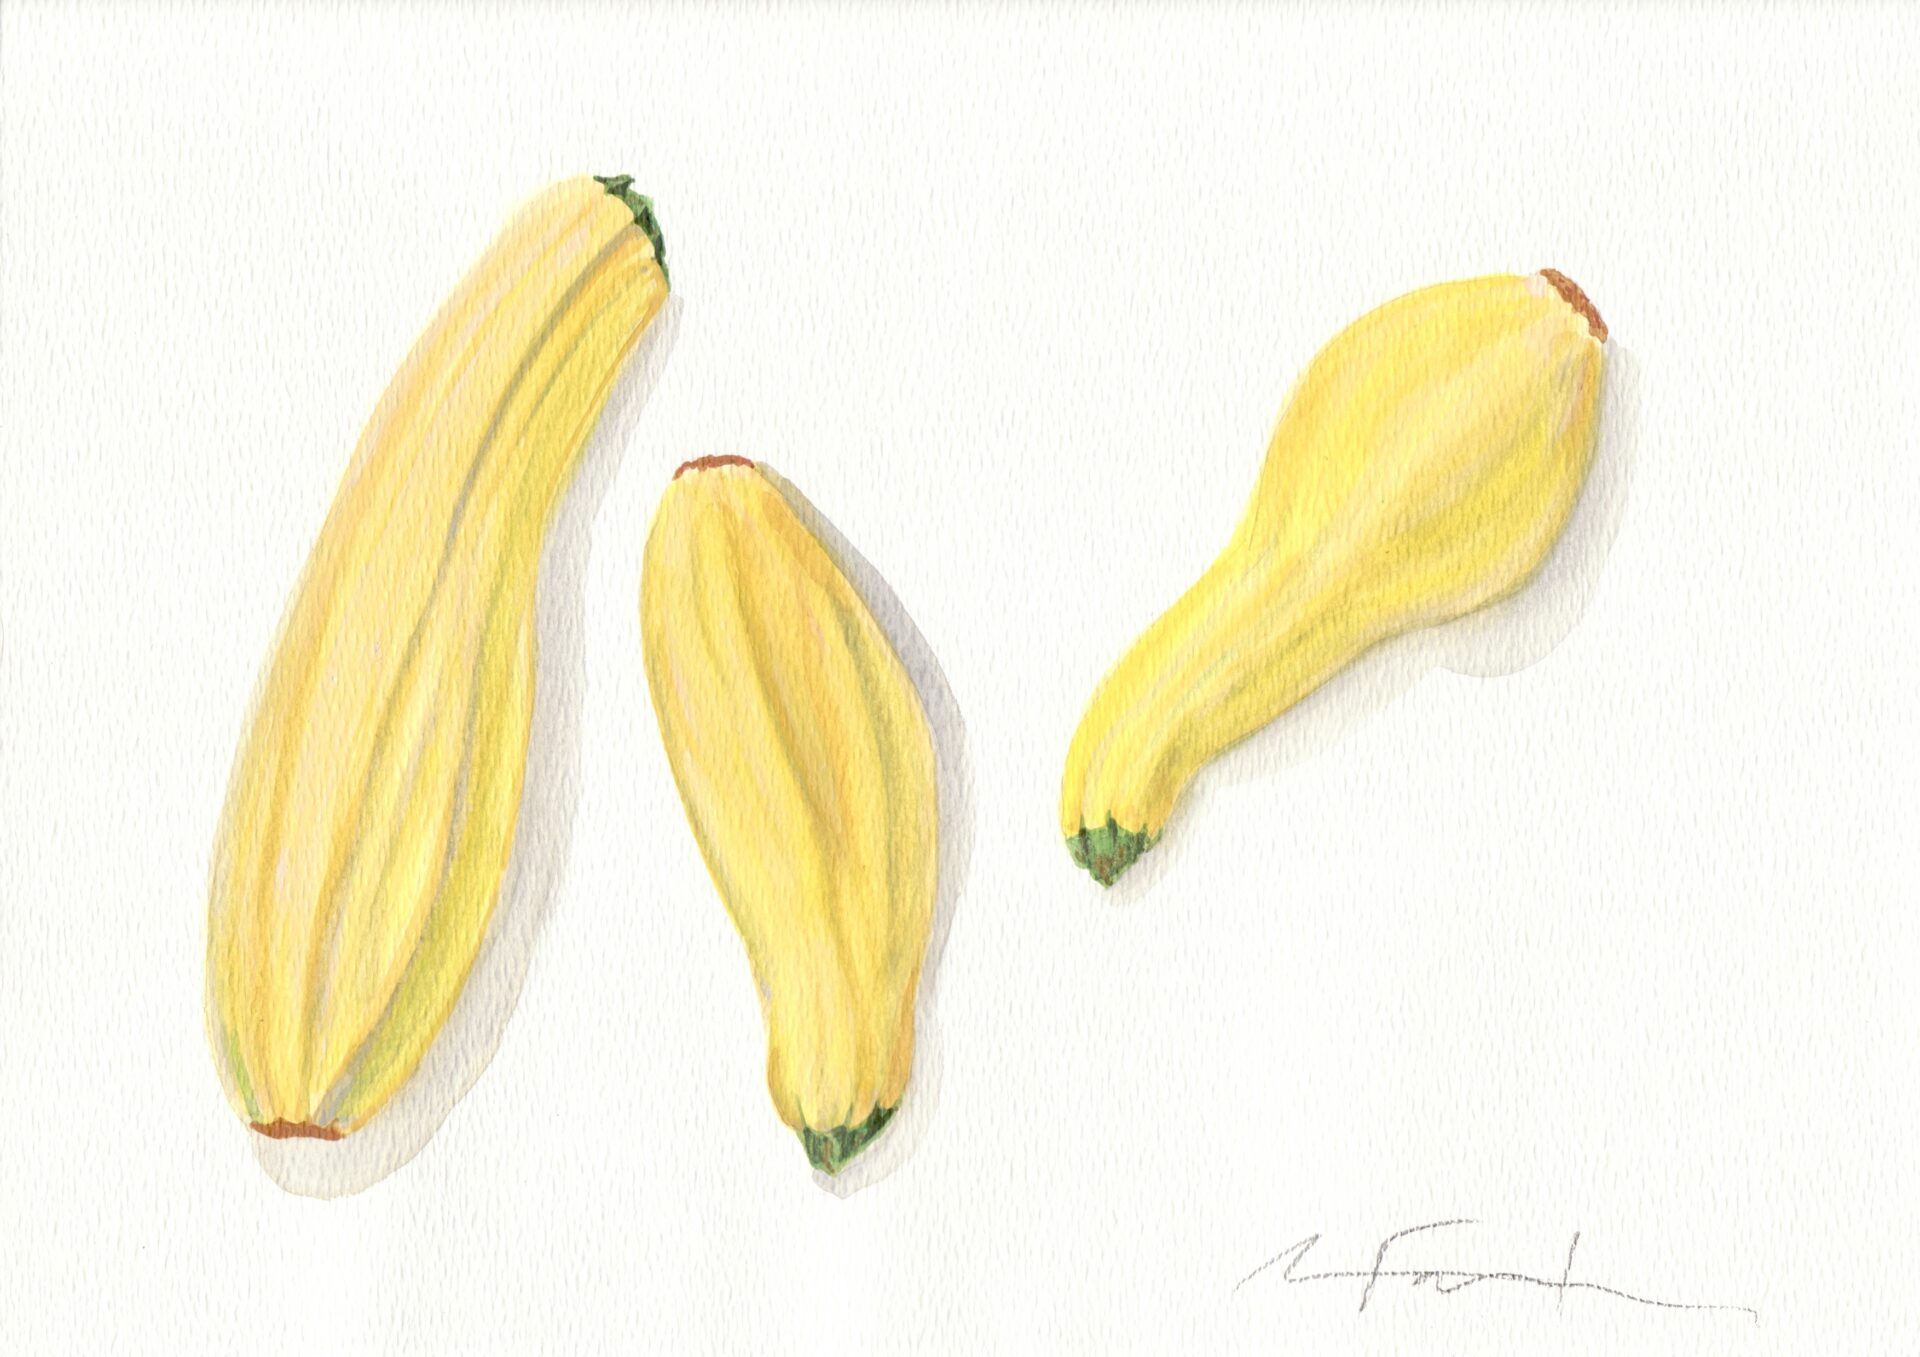 Yellow squash watercolor study 1